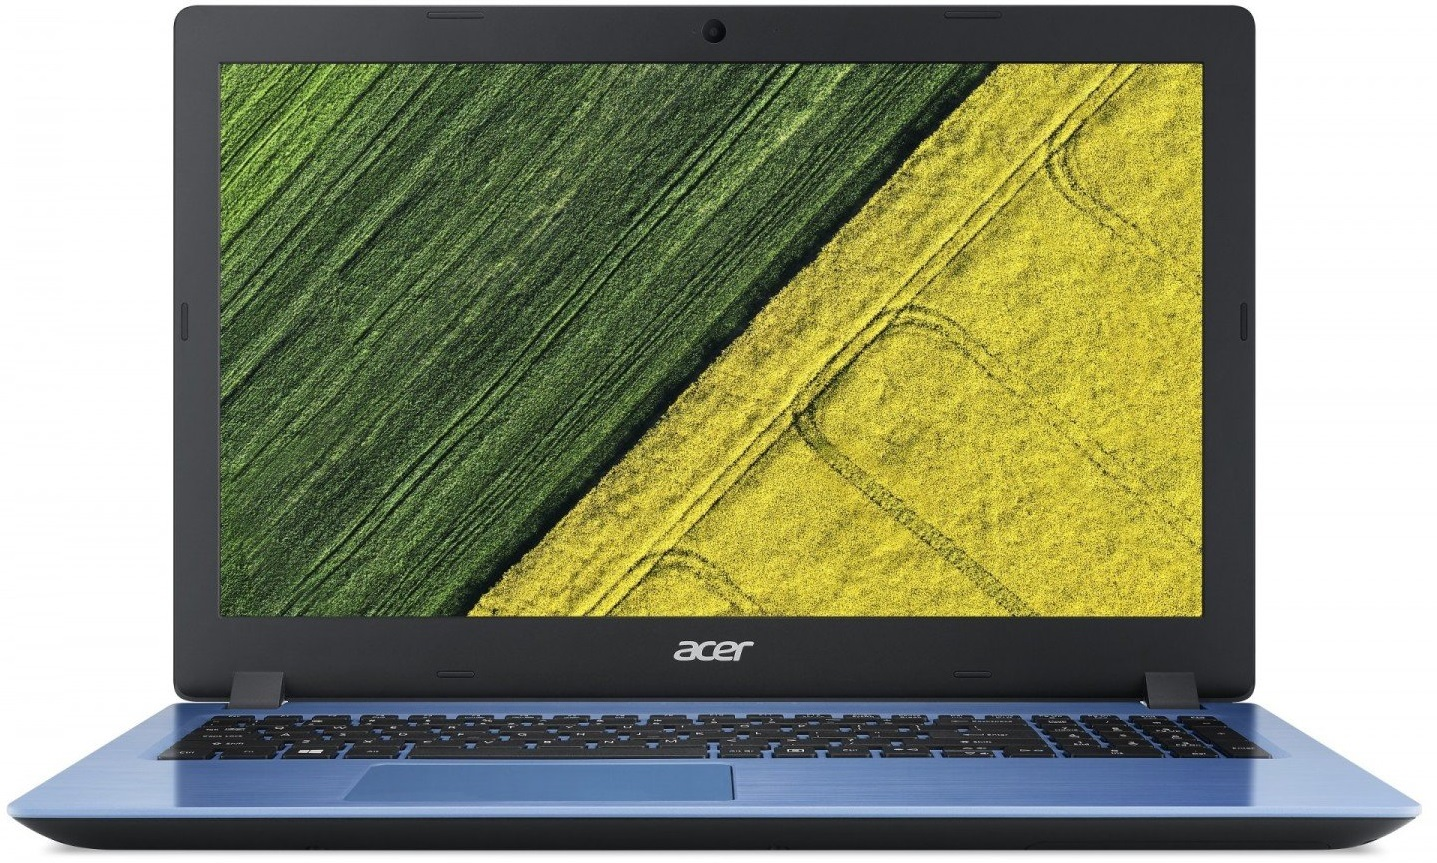 ACER EXTENSA 7420 LAN DRIVERS FOR WINDOWS 7